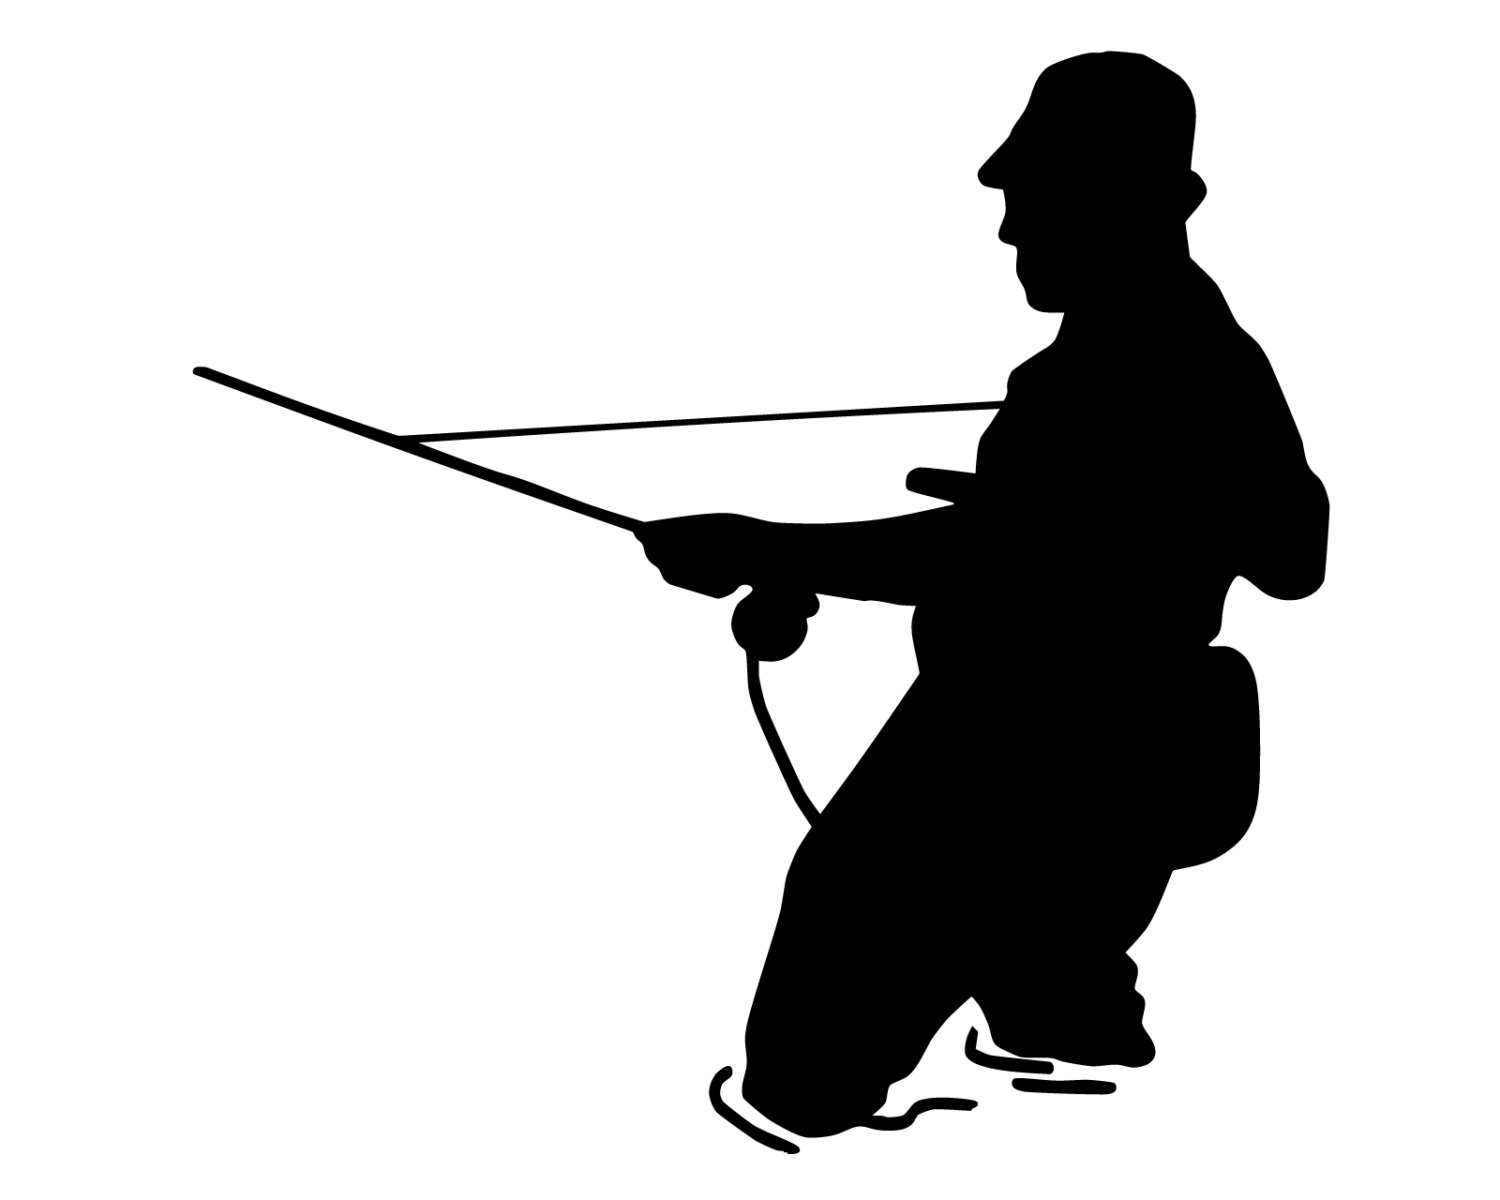 1500x1200 Fly Fishing Silhouette Clipart. Fly Fisherman Silhouette Royalty